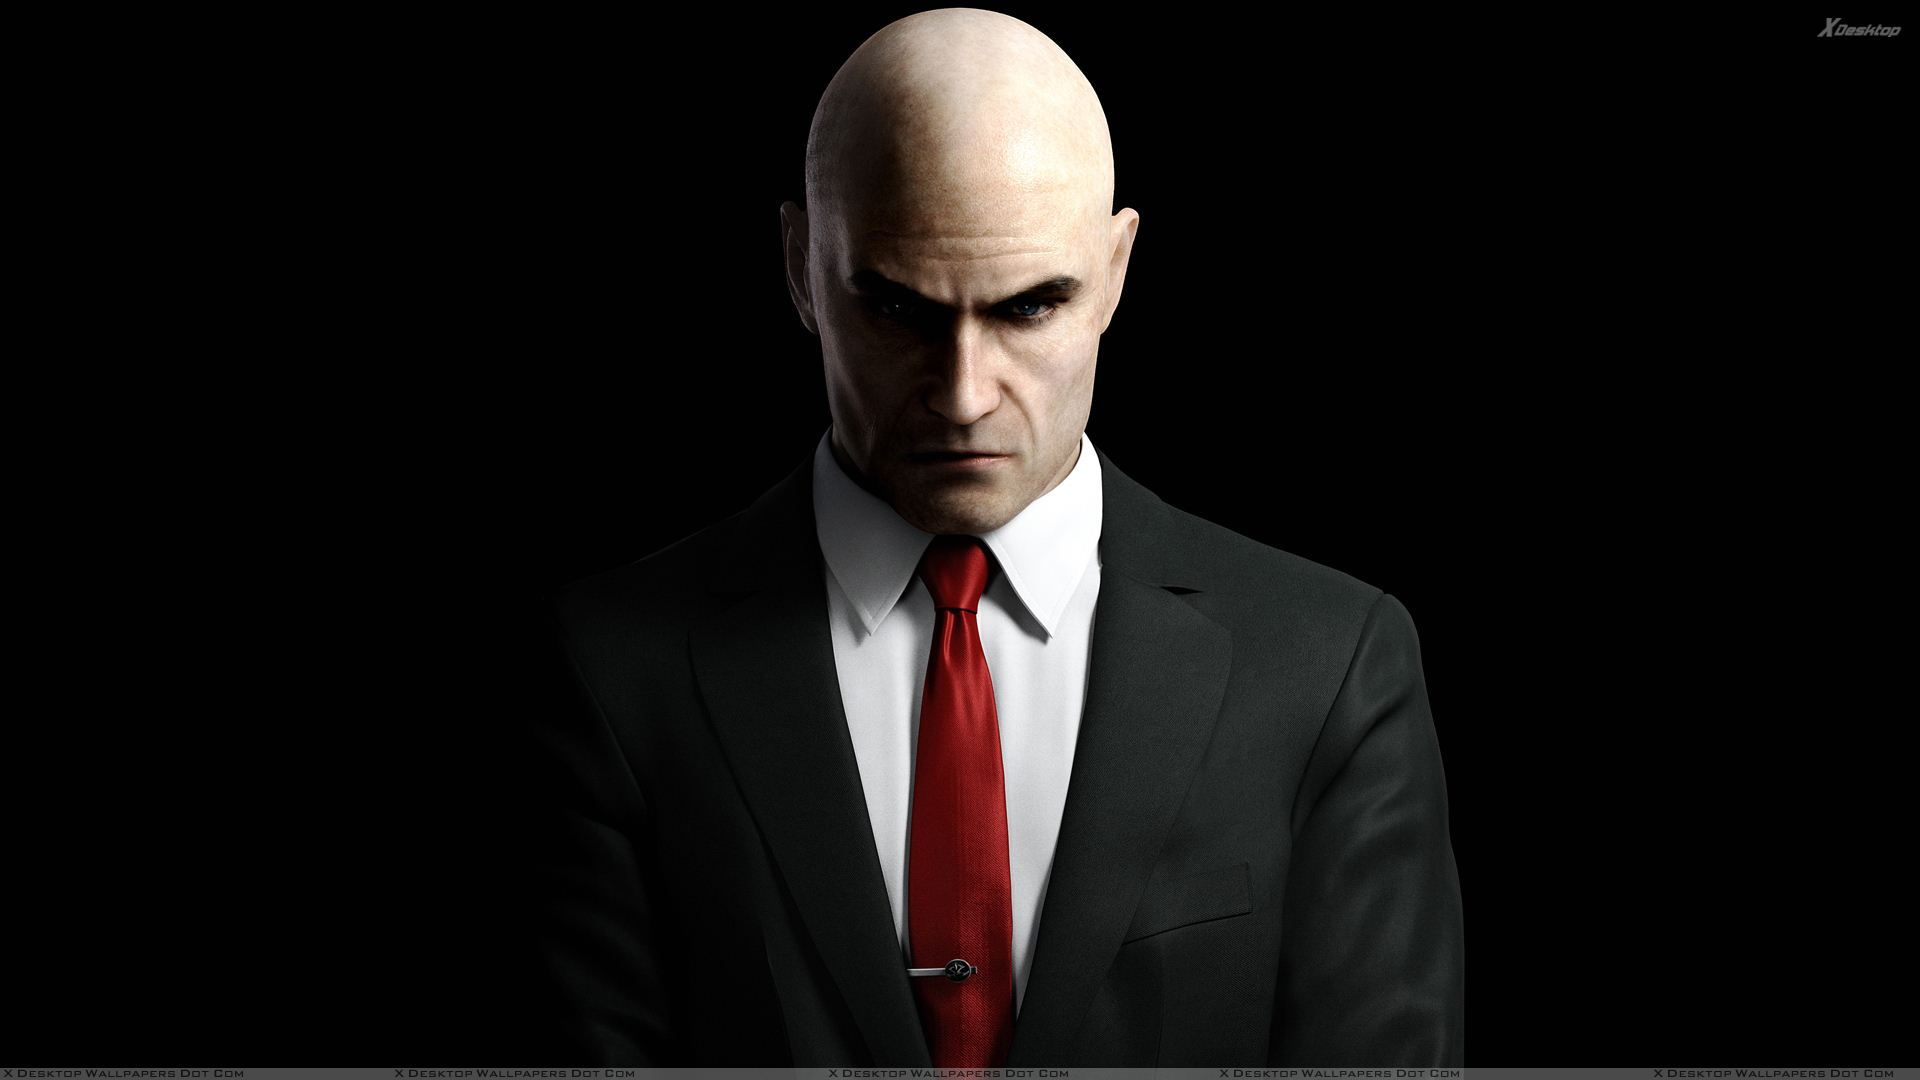 Hitman Absolution - A Silent Killer